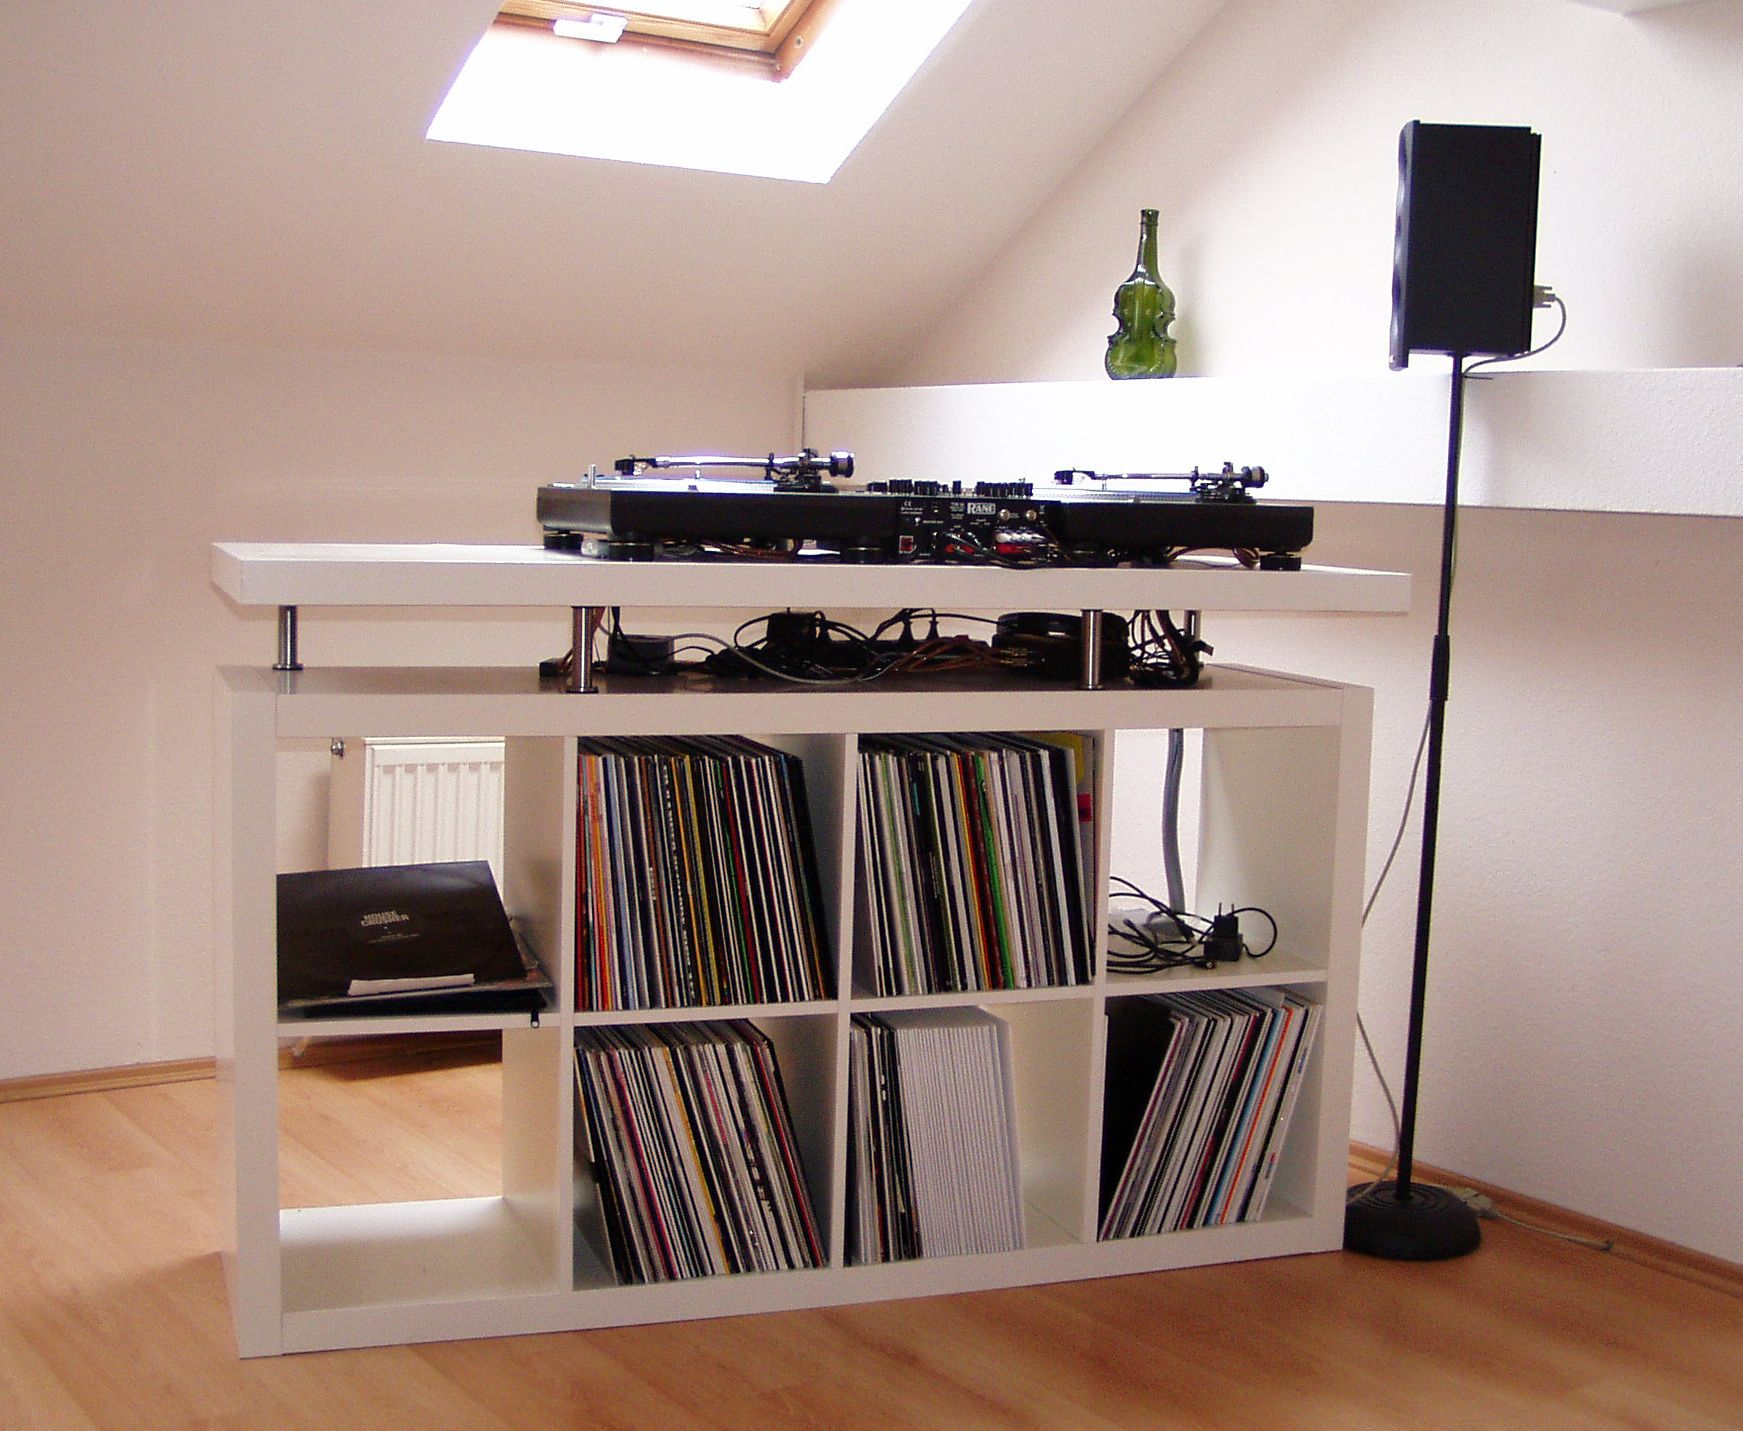 dj turntable mixing desk stand hey dj pinterest hifi m bel plattenregal und b ros. Black Bedroom Furniture Sets. Home Design Ideas